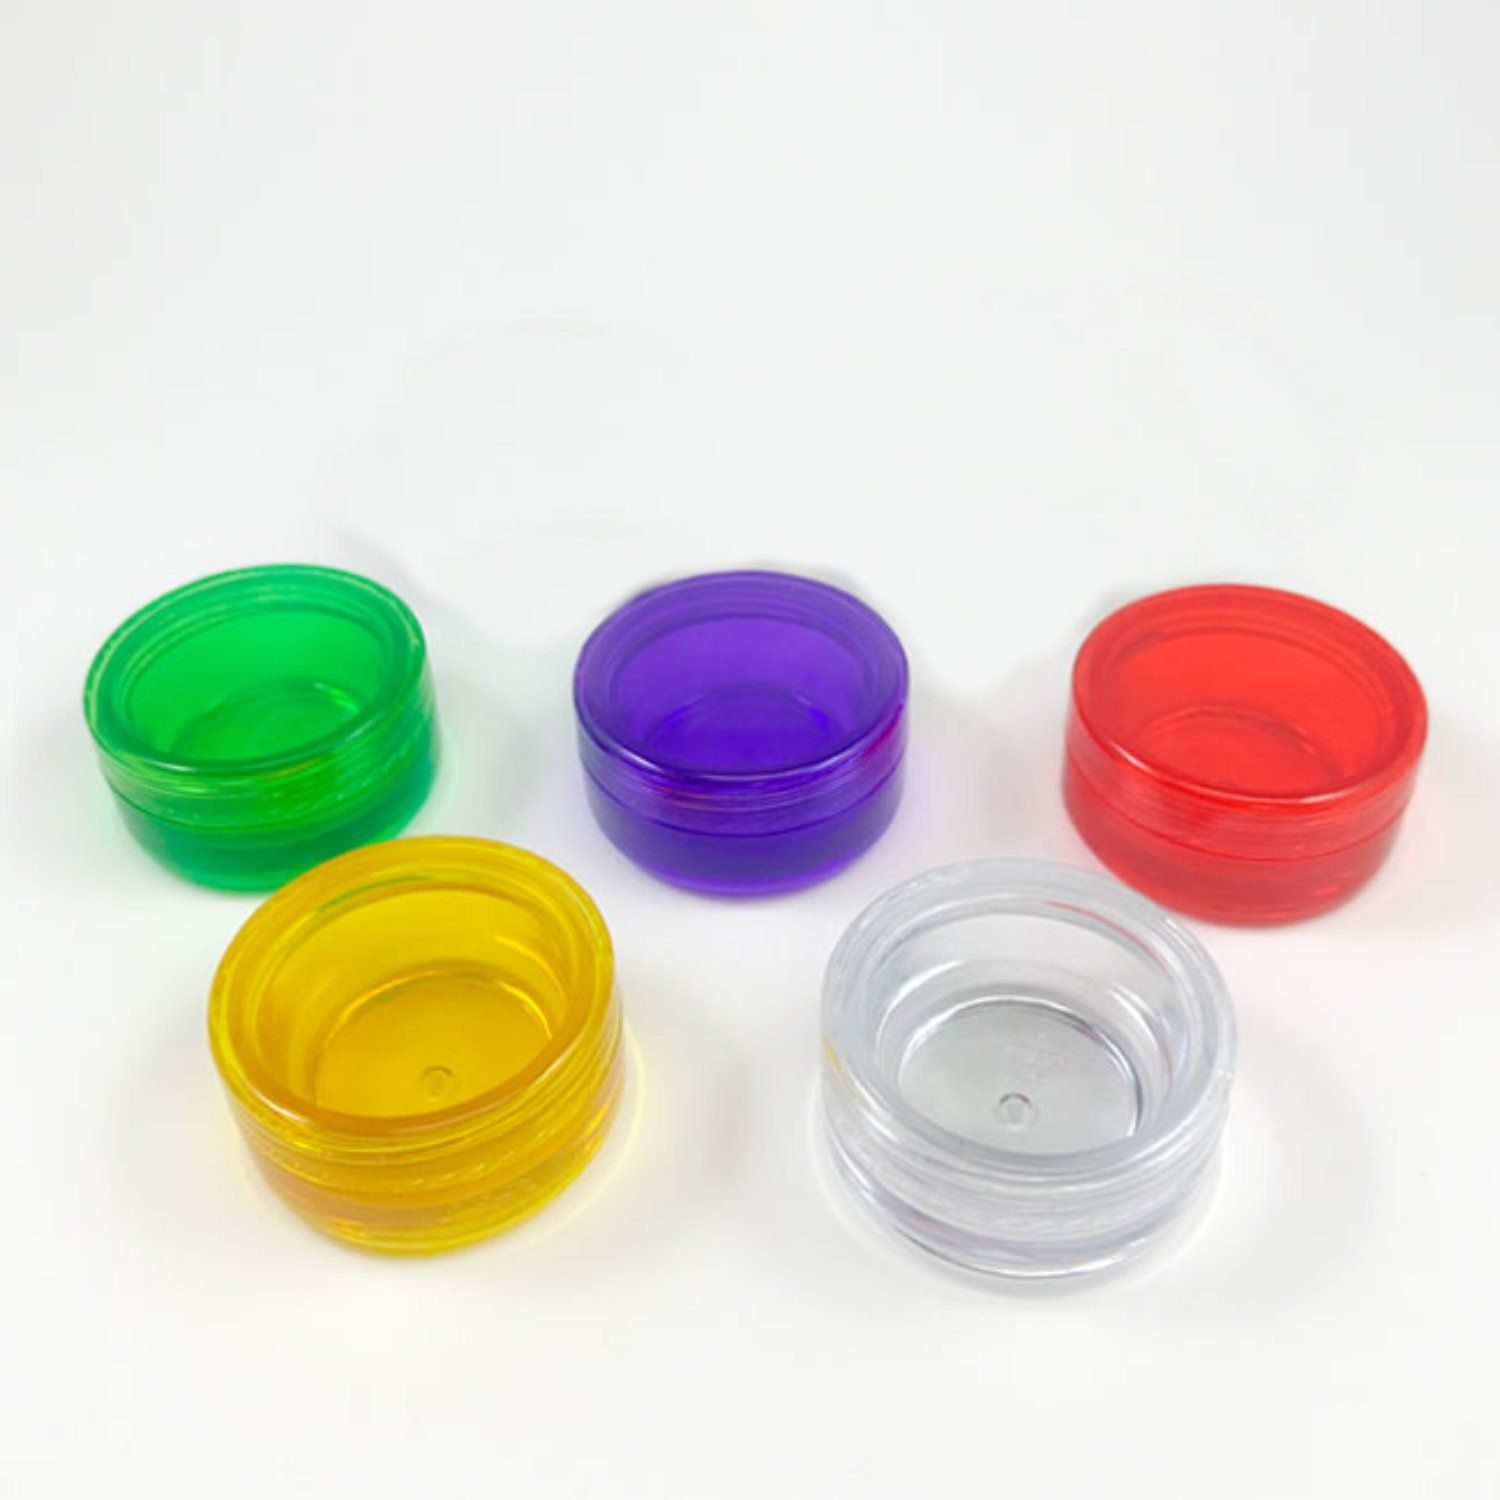 Acrylic Concentrate Containers For 1 Gram Or 7ml With Shrink Wrap Included Shrink Wrap Concentration Container